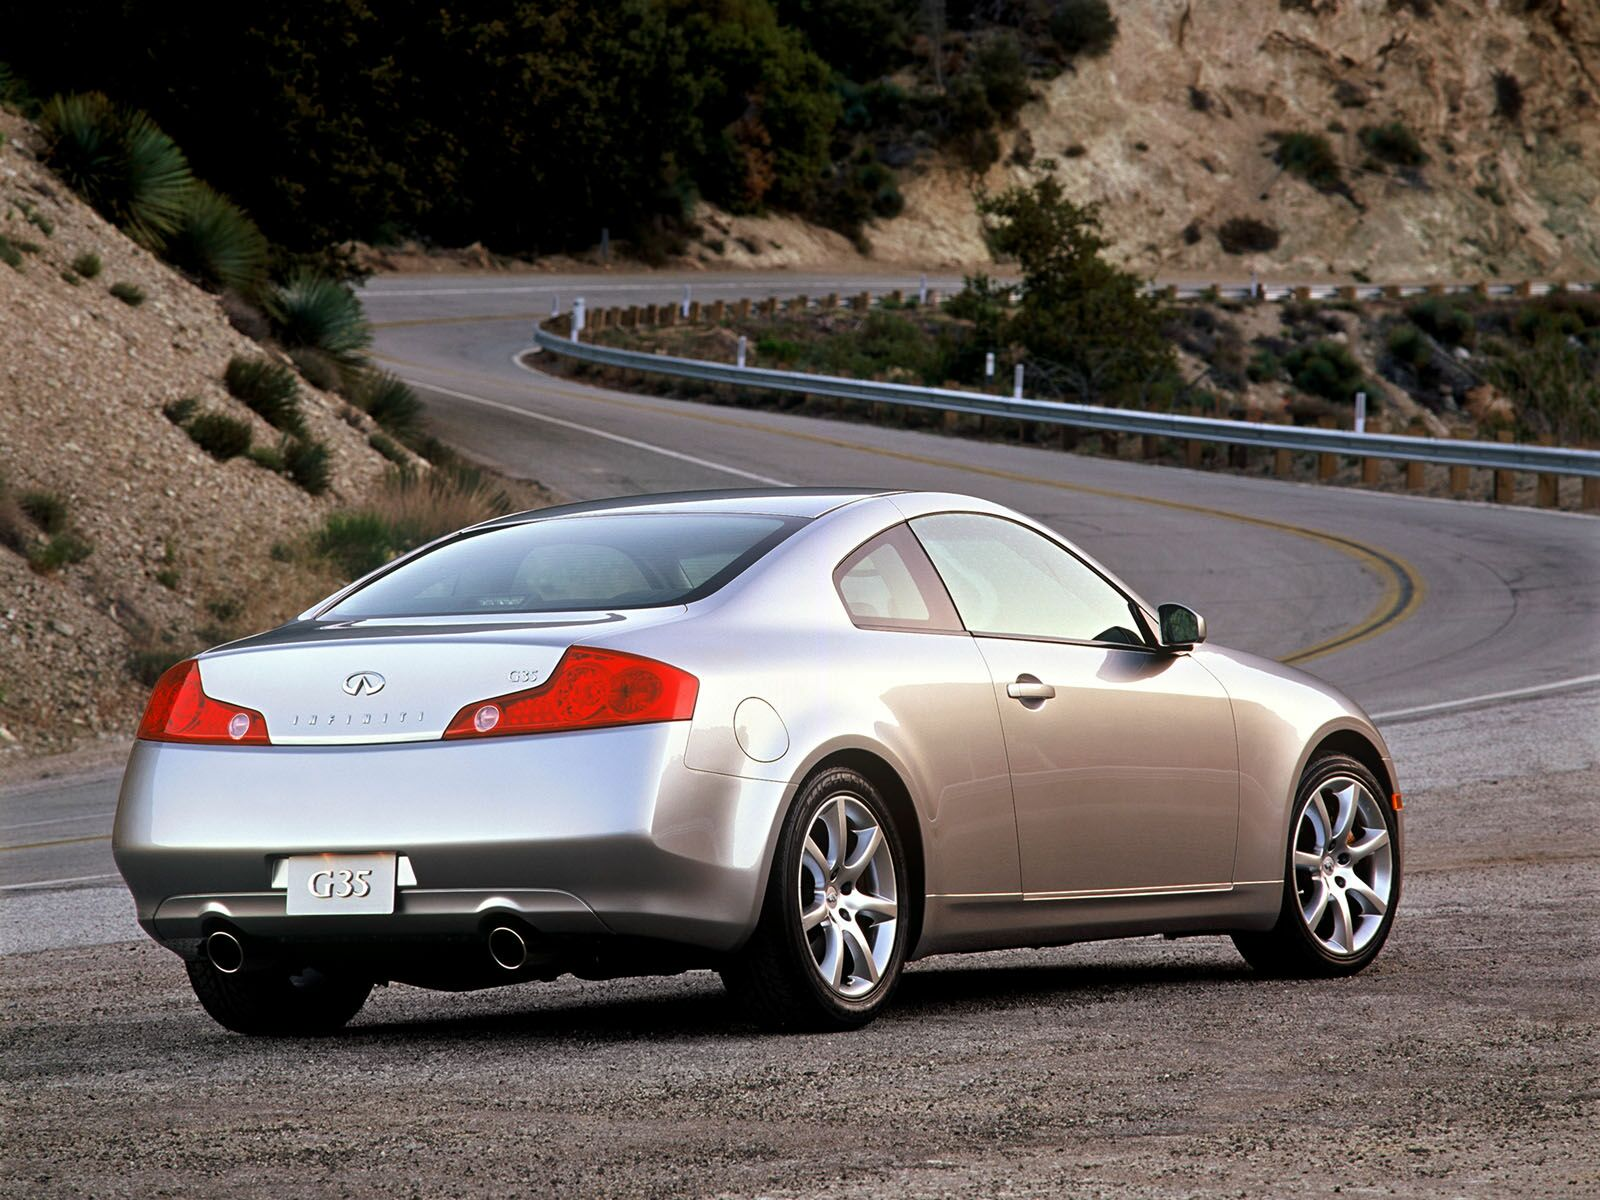 Infiniti G35 Coupe photo 8584